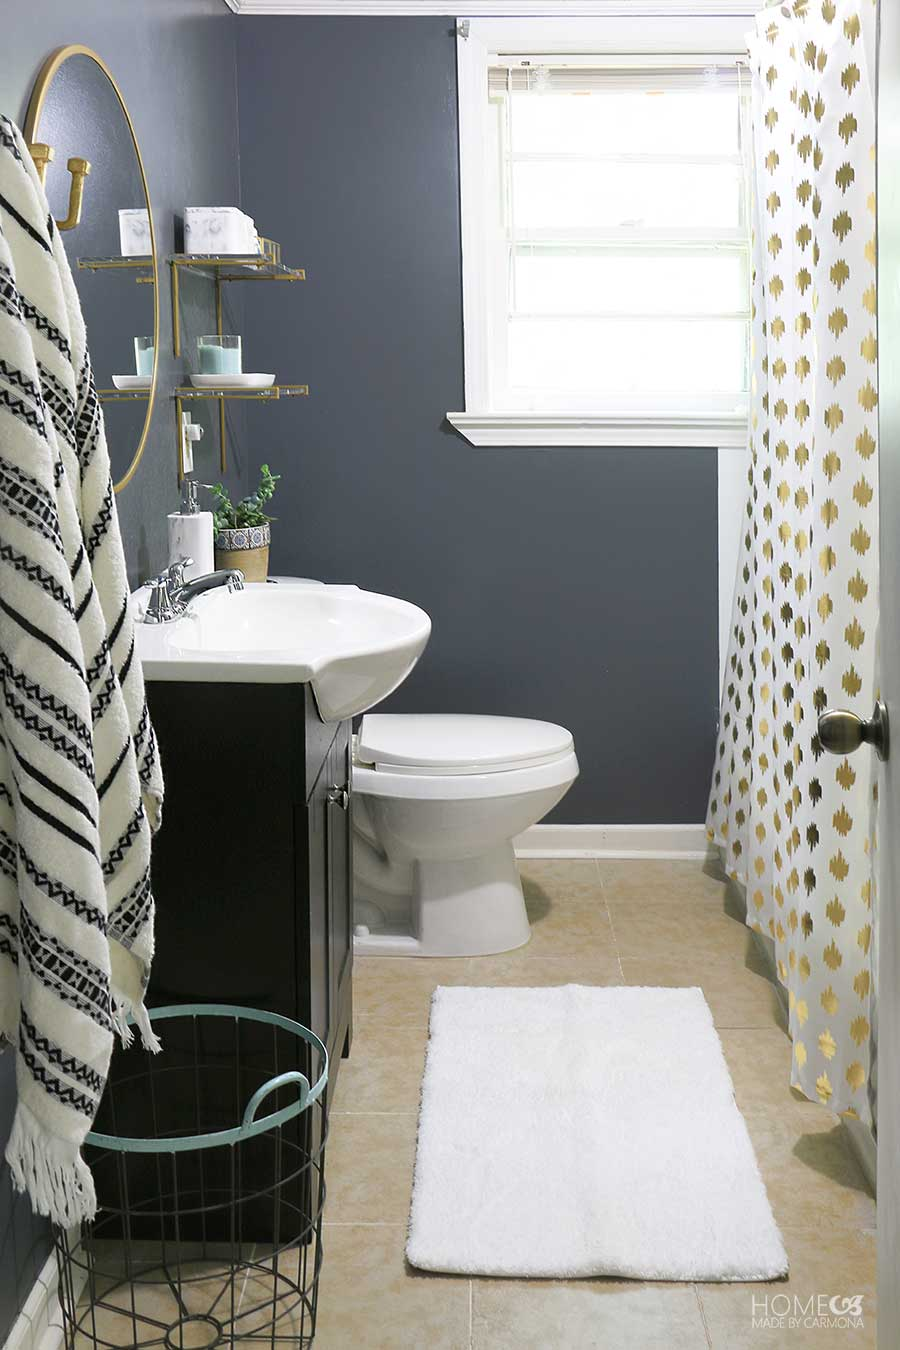 Small-bathroom-styling